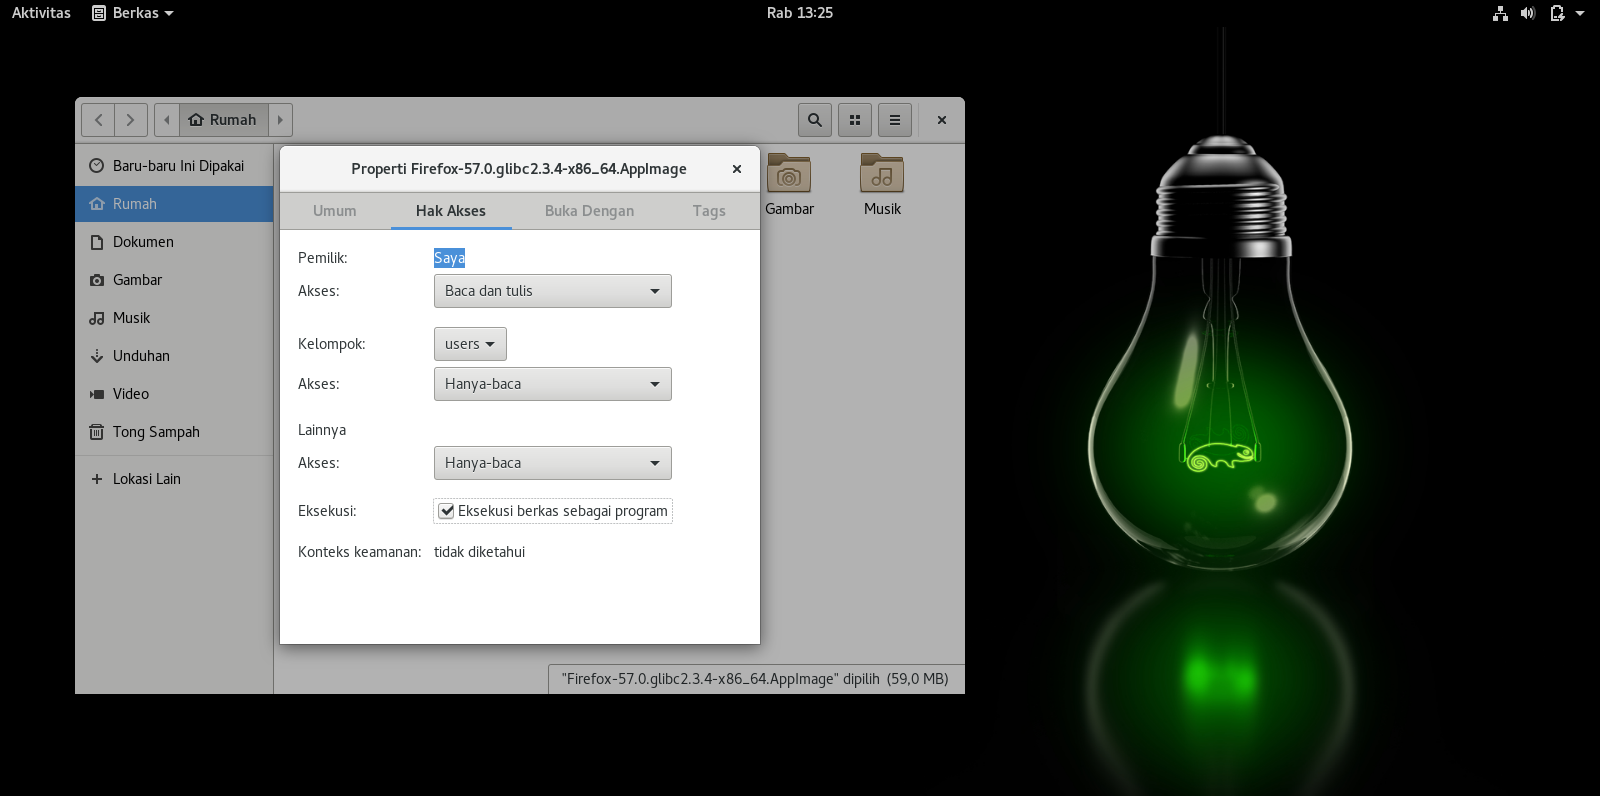 https://opensuse.id/wp-content/uploads/2017/11/VirtualBox_Leap-42.3_15_11_2017_13_24_07.png